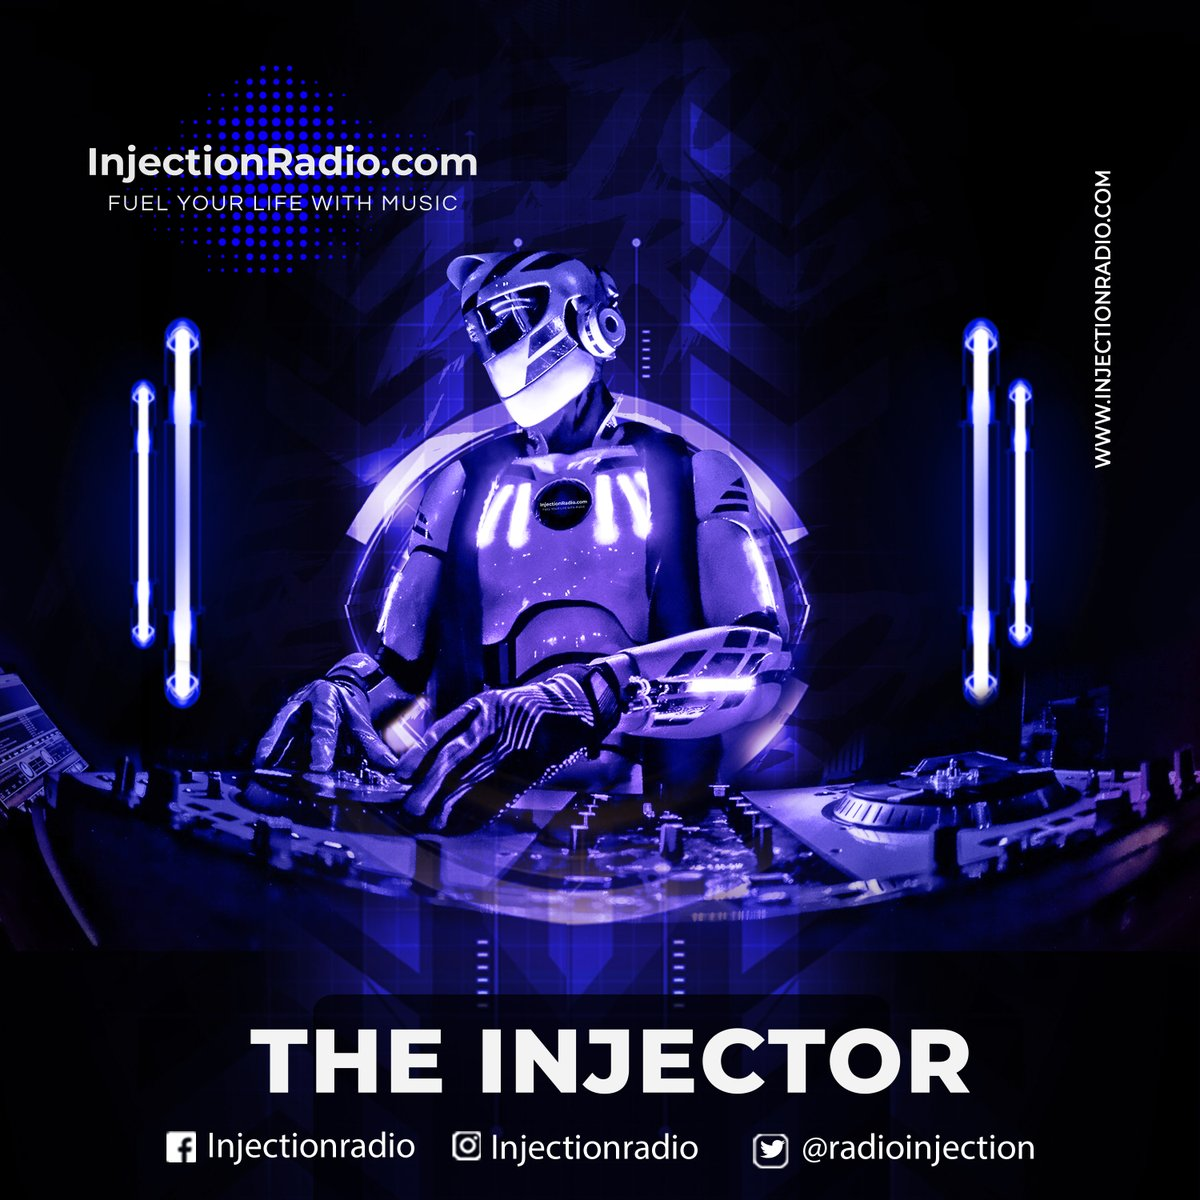 Remember! We currently have no Live DJ's during the day! But THE INJECTOR is here to keep you partying strong! Tune in now at http://www.injectionradio.com #party #partyatwork #partytime #grabthespeaker #liveradio #robotpic.twitter.com/6Y4BBM5FZo